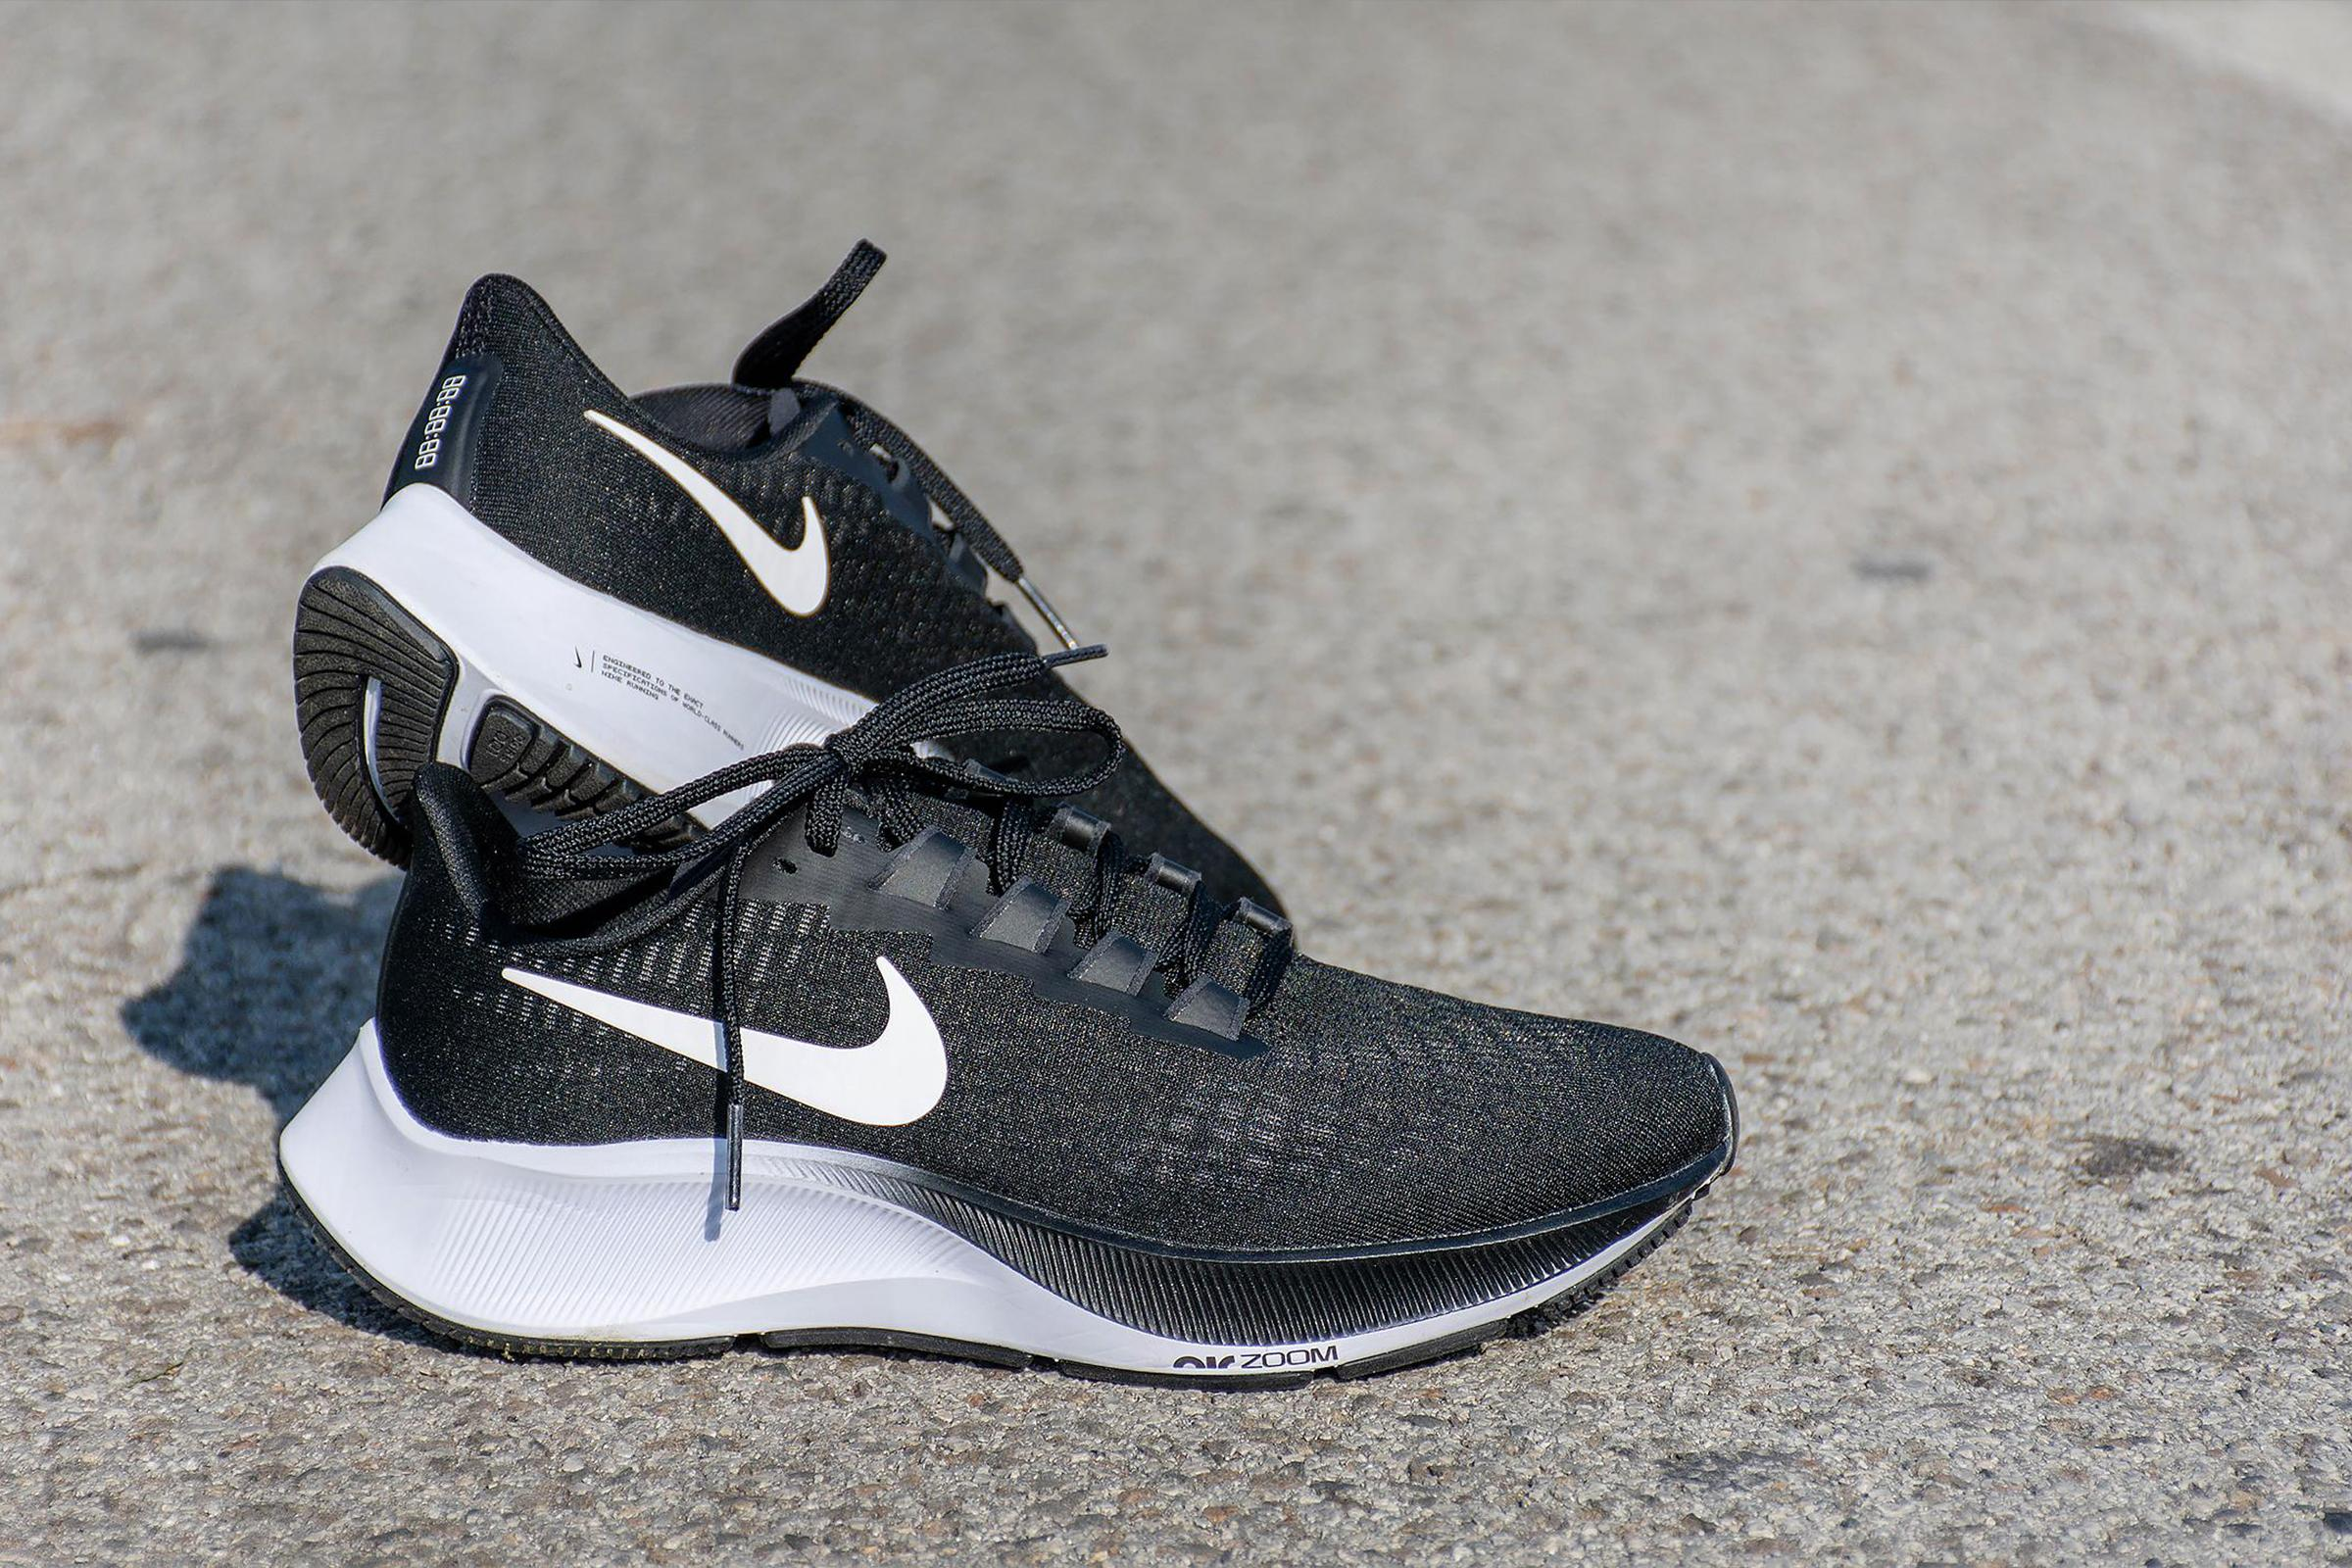 Nike Pegasus 37 photo